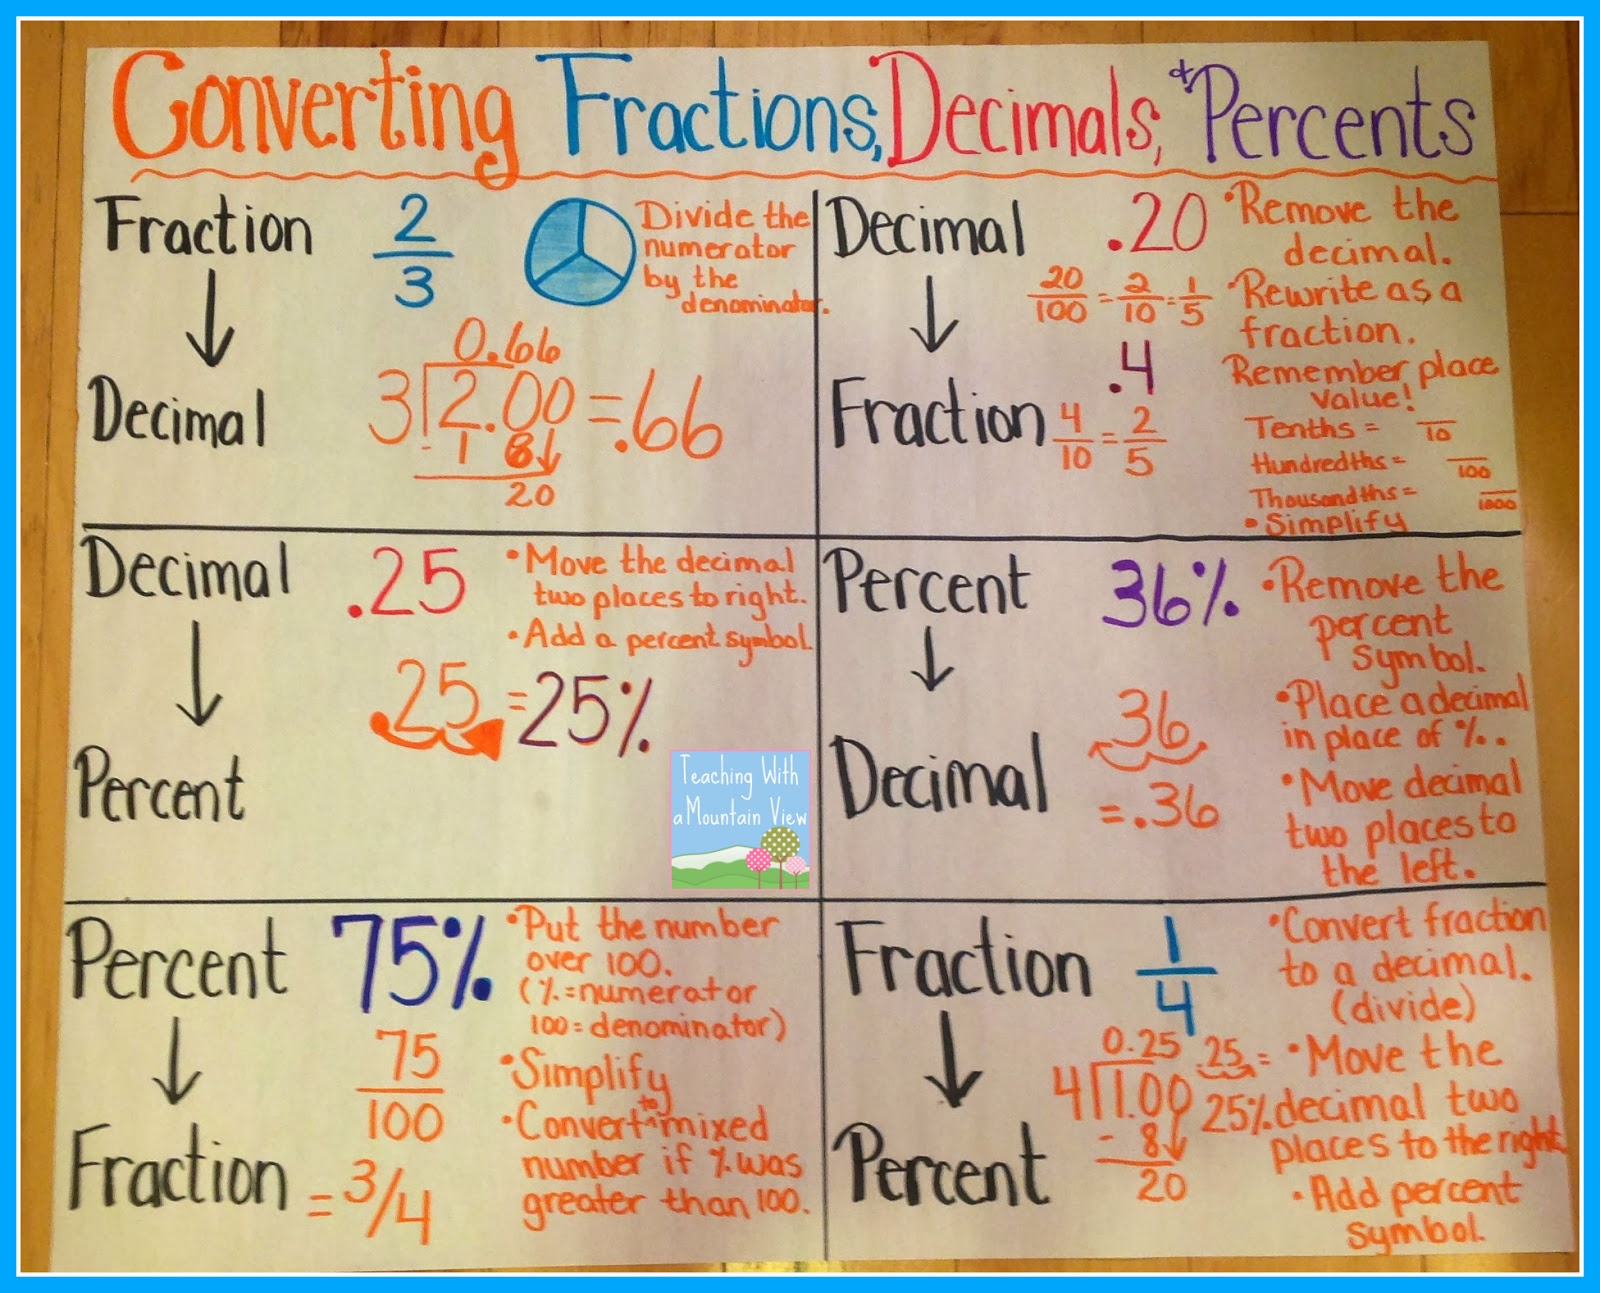 hight resolution of Percentages Fractions And Decimals Worksheet   Printable Worksheets and  Activities for Teachers